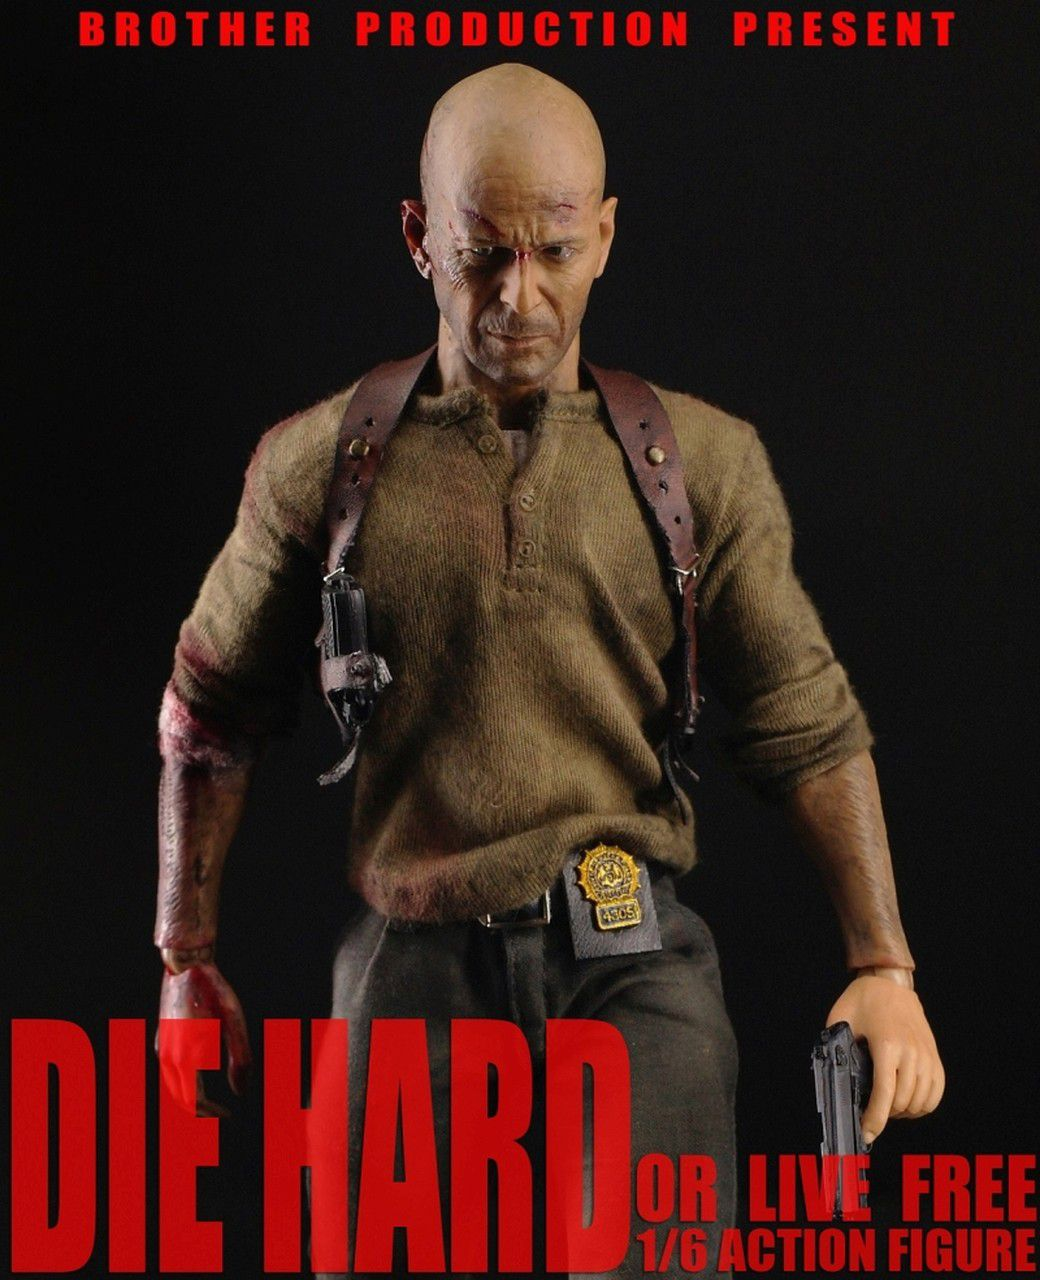 Action Figure John McClane: Duro de Matar 2.0 (Die Hard or Live Free) Escala 1/6 - Brother Production - CDL